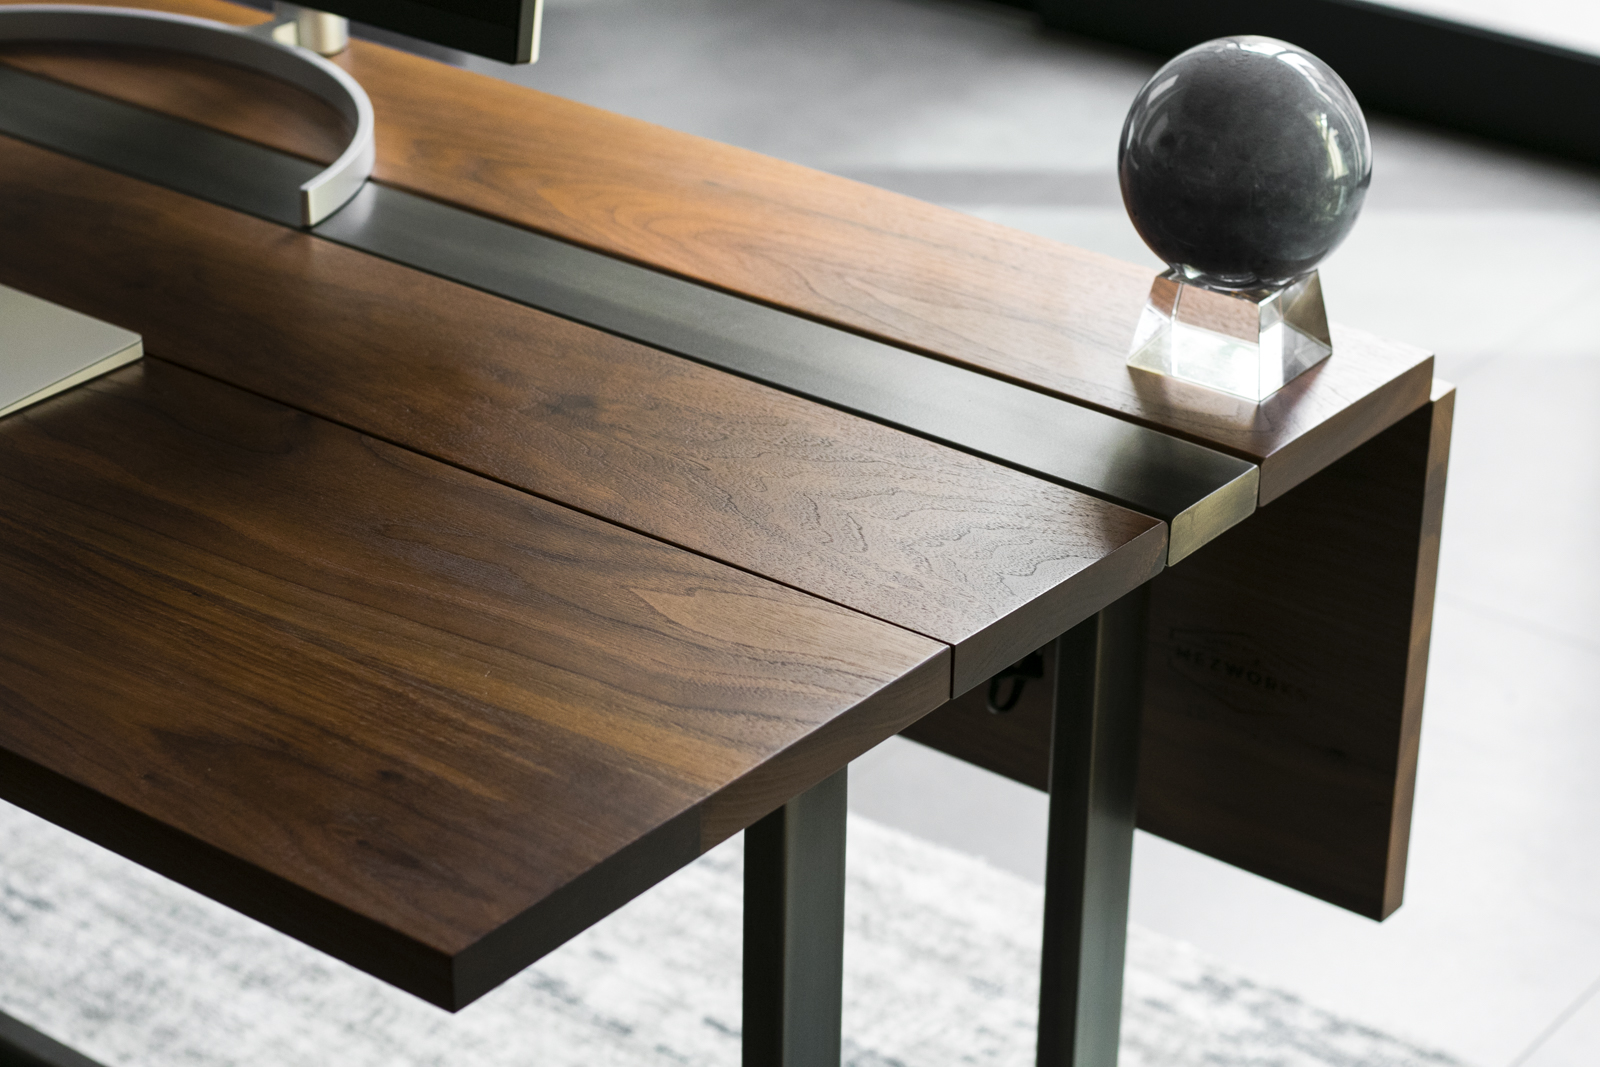 Mez Works Furniture Lake Tahoe And Sf Bay Area Insignia Drop Leaf Walnut Dining Table Or Desk Nakashima Inspired Steel Base